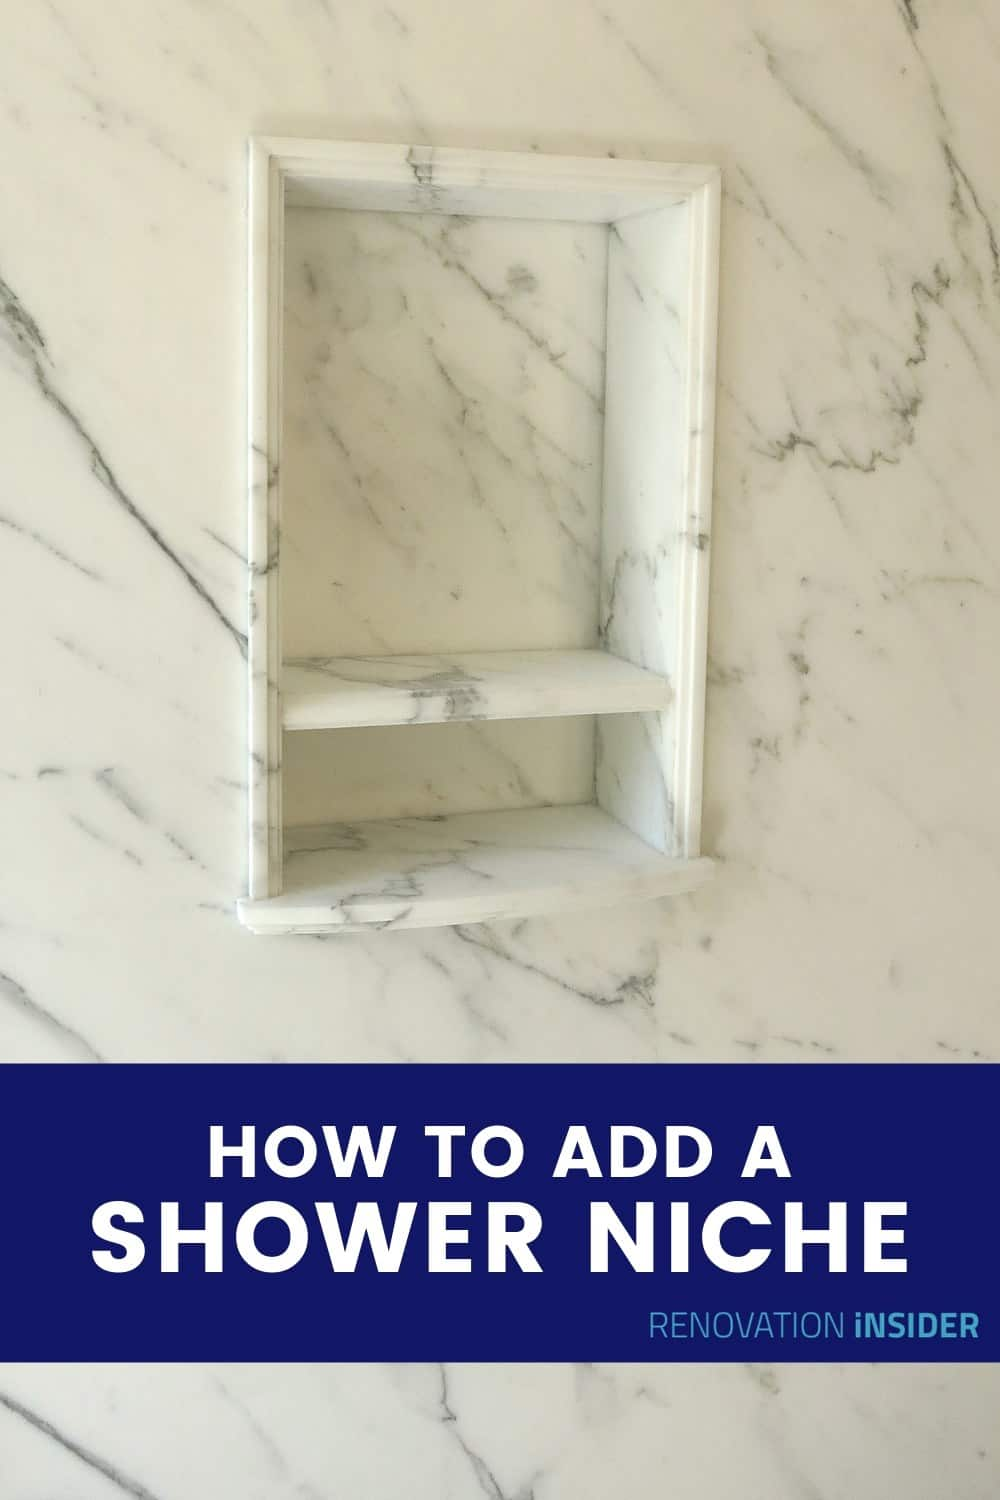 How To Add A Shower Niche